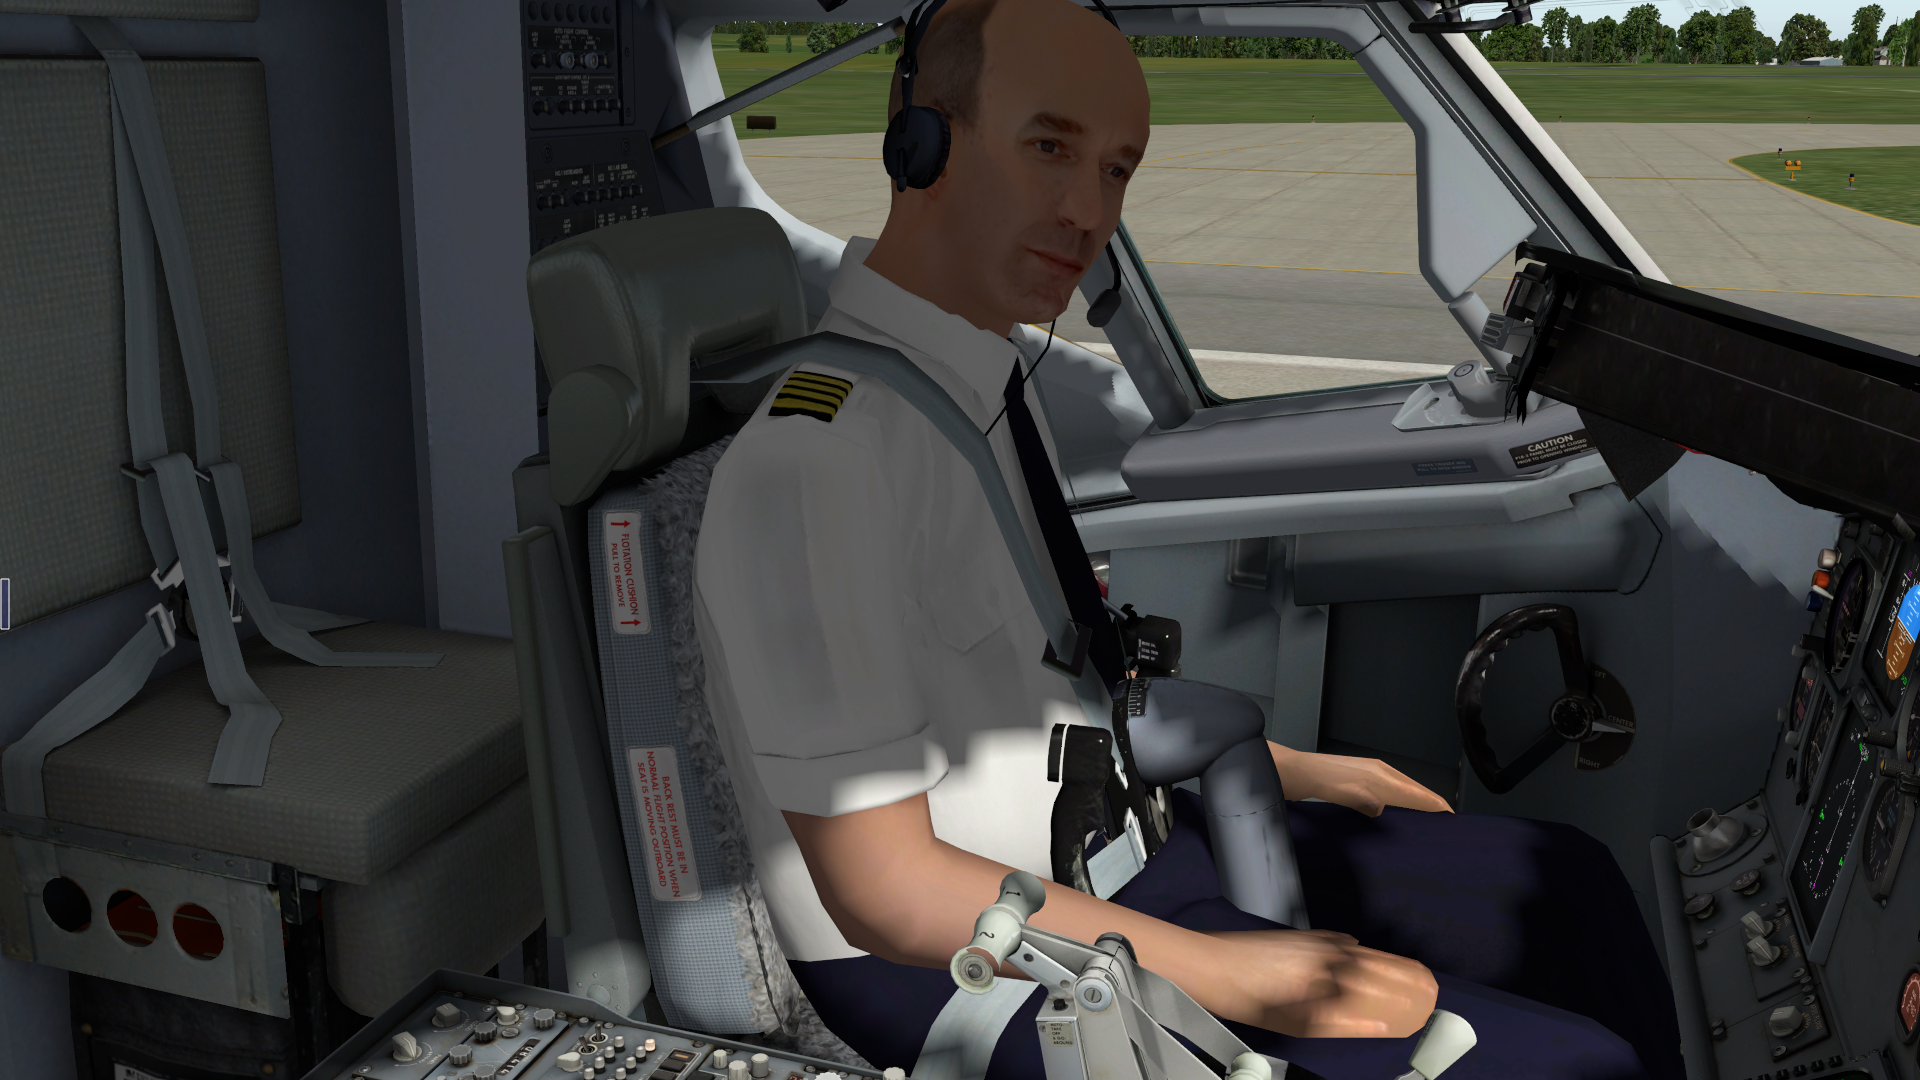 Moving seat back a little - Feature Suggestions - X-Pilot